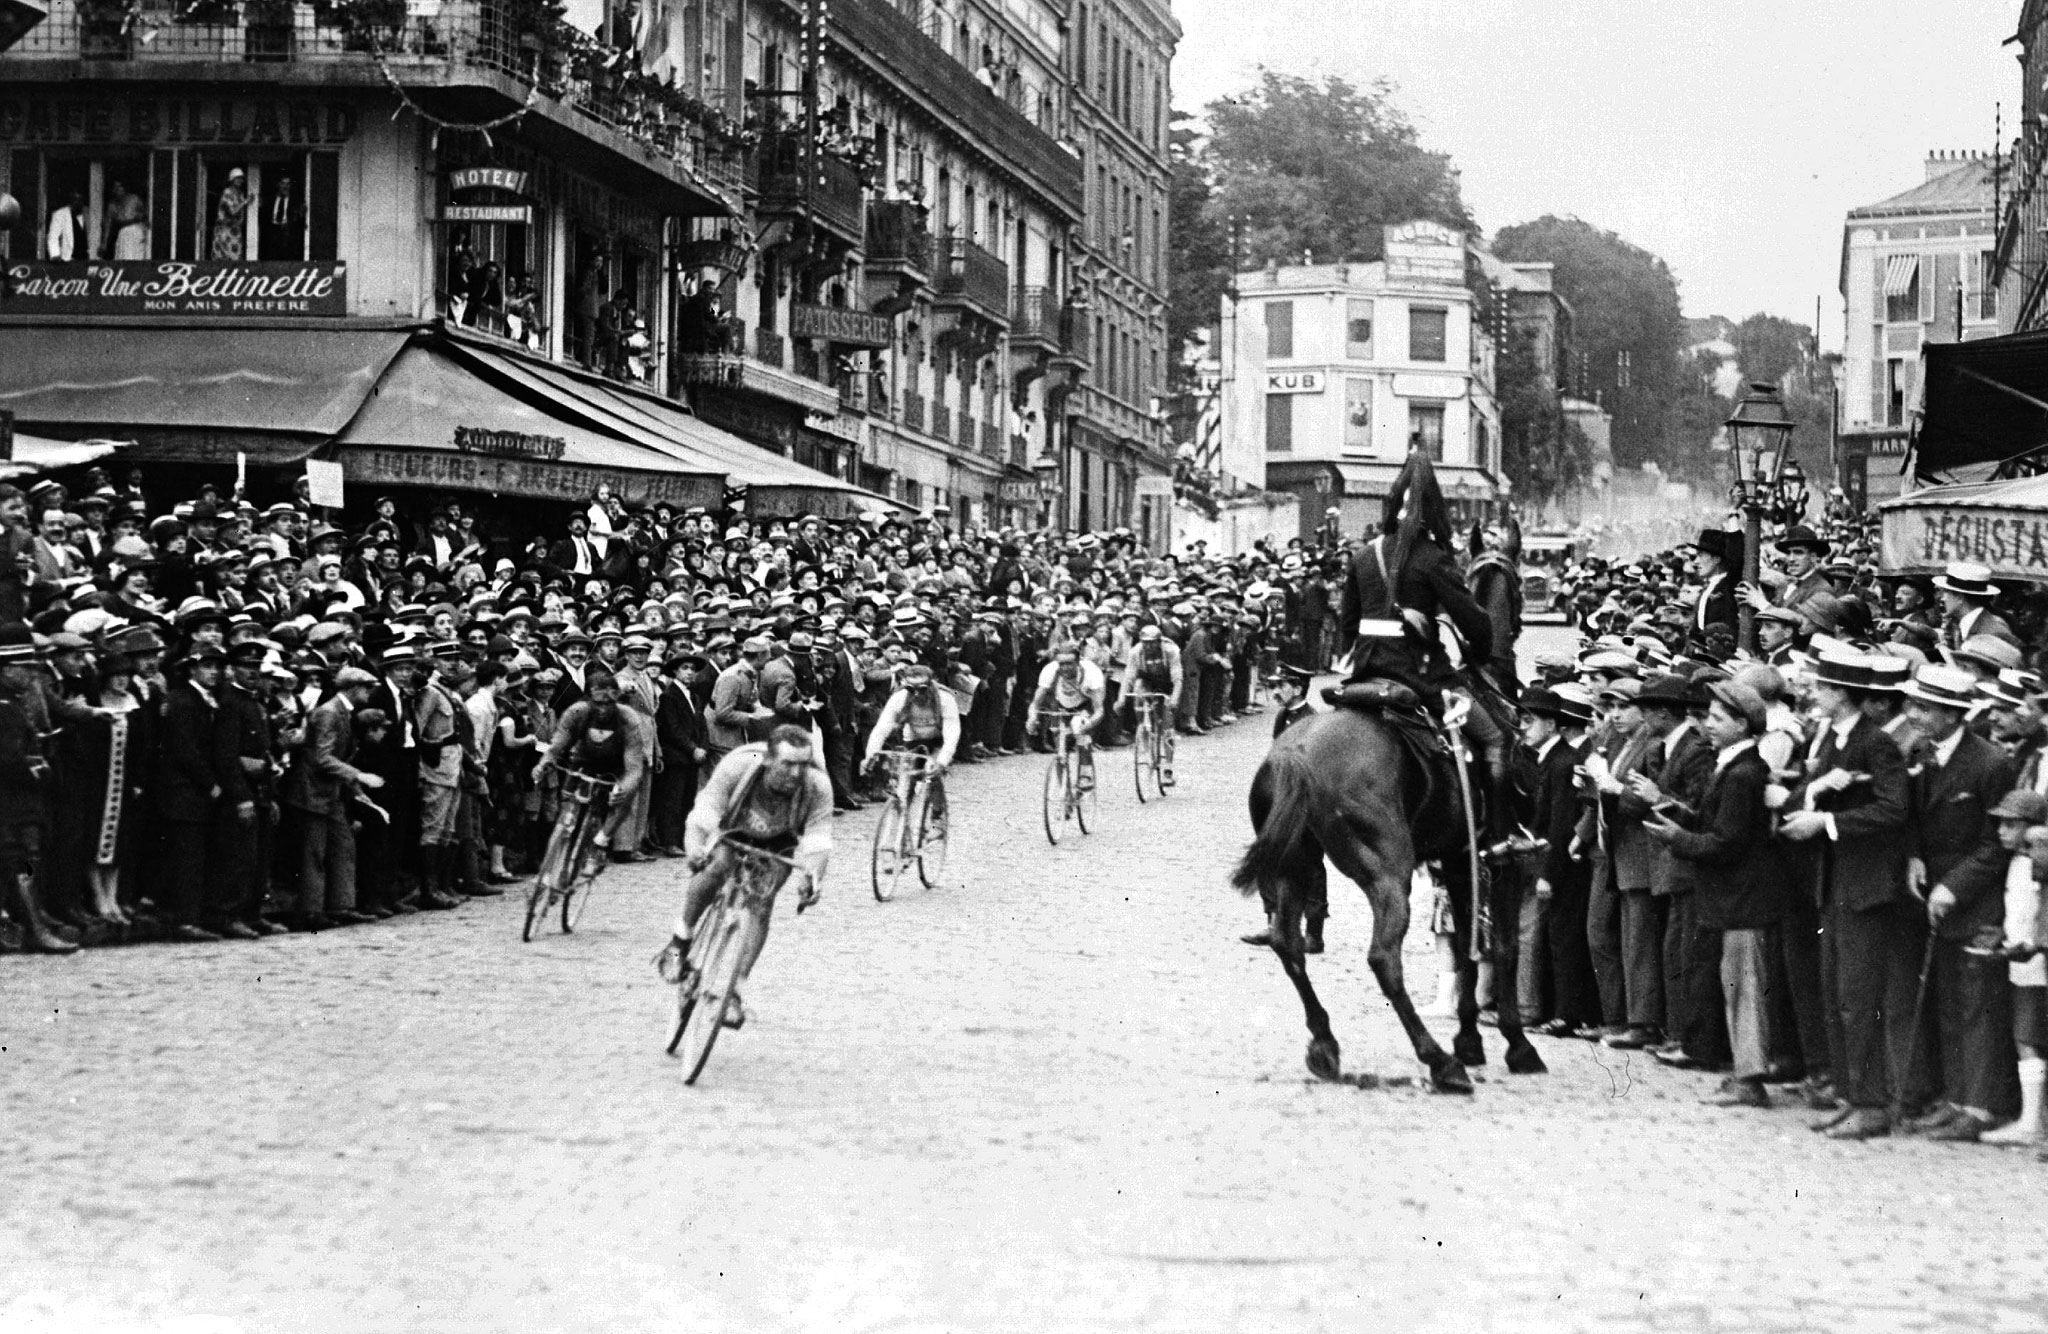 Riding The Rails - Historical look at the Tour de France - ESPN